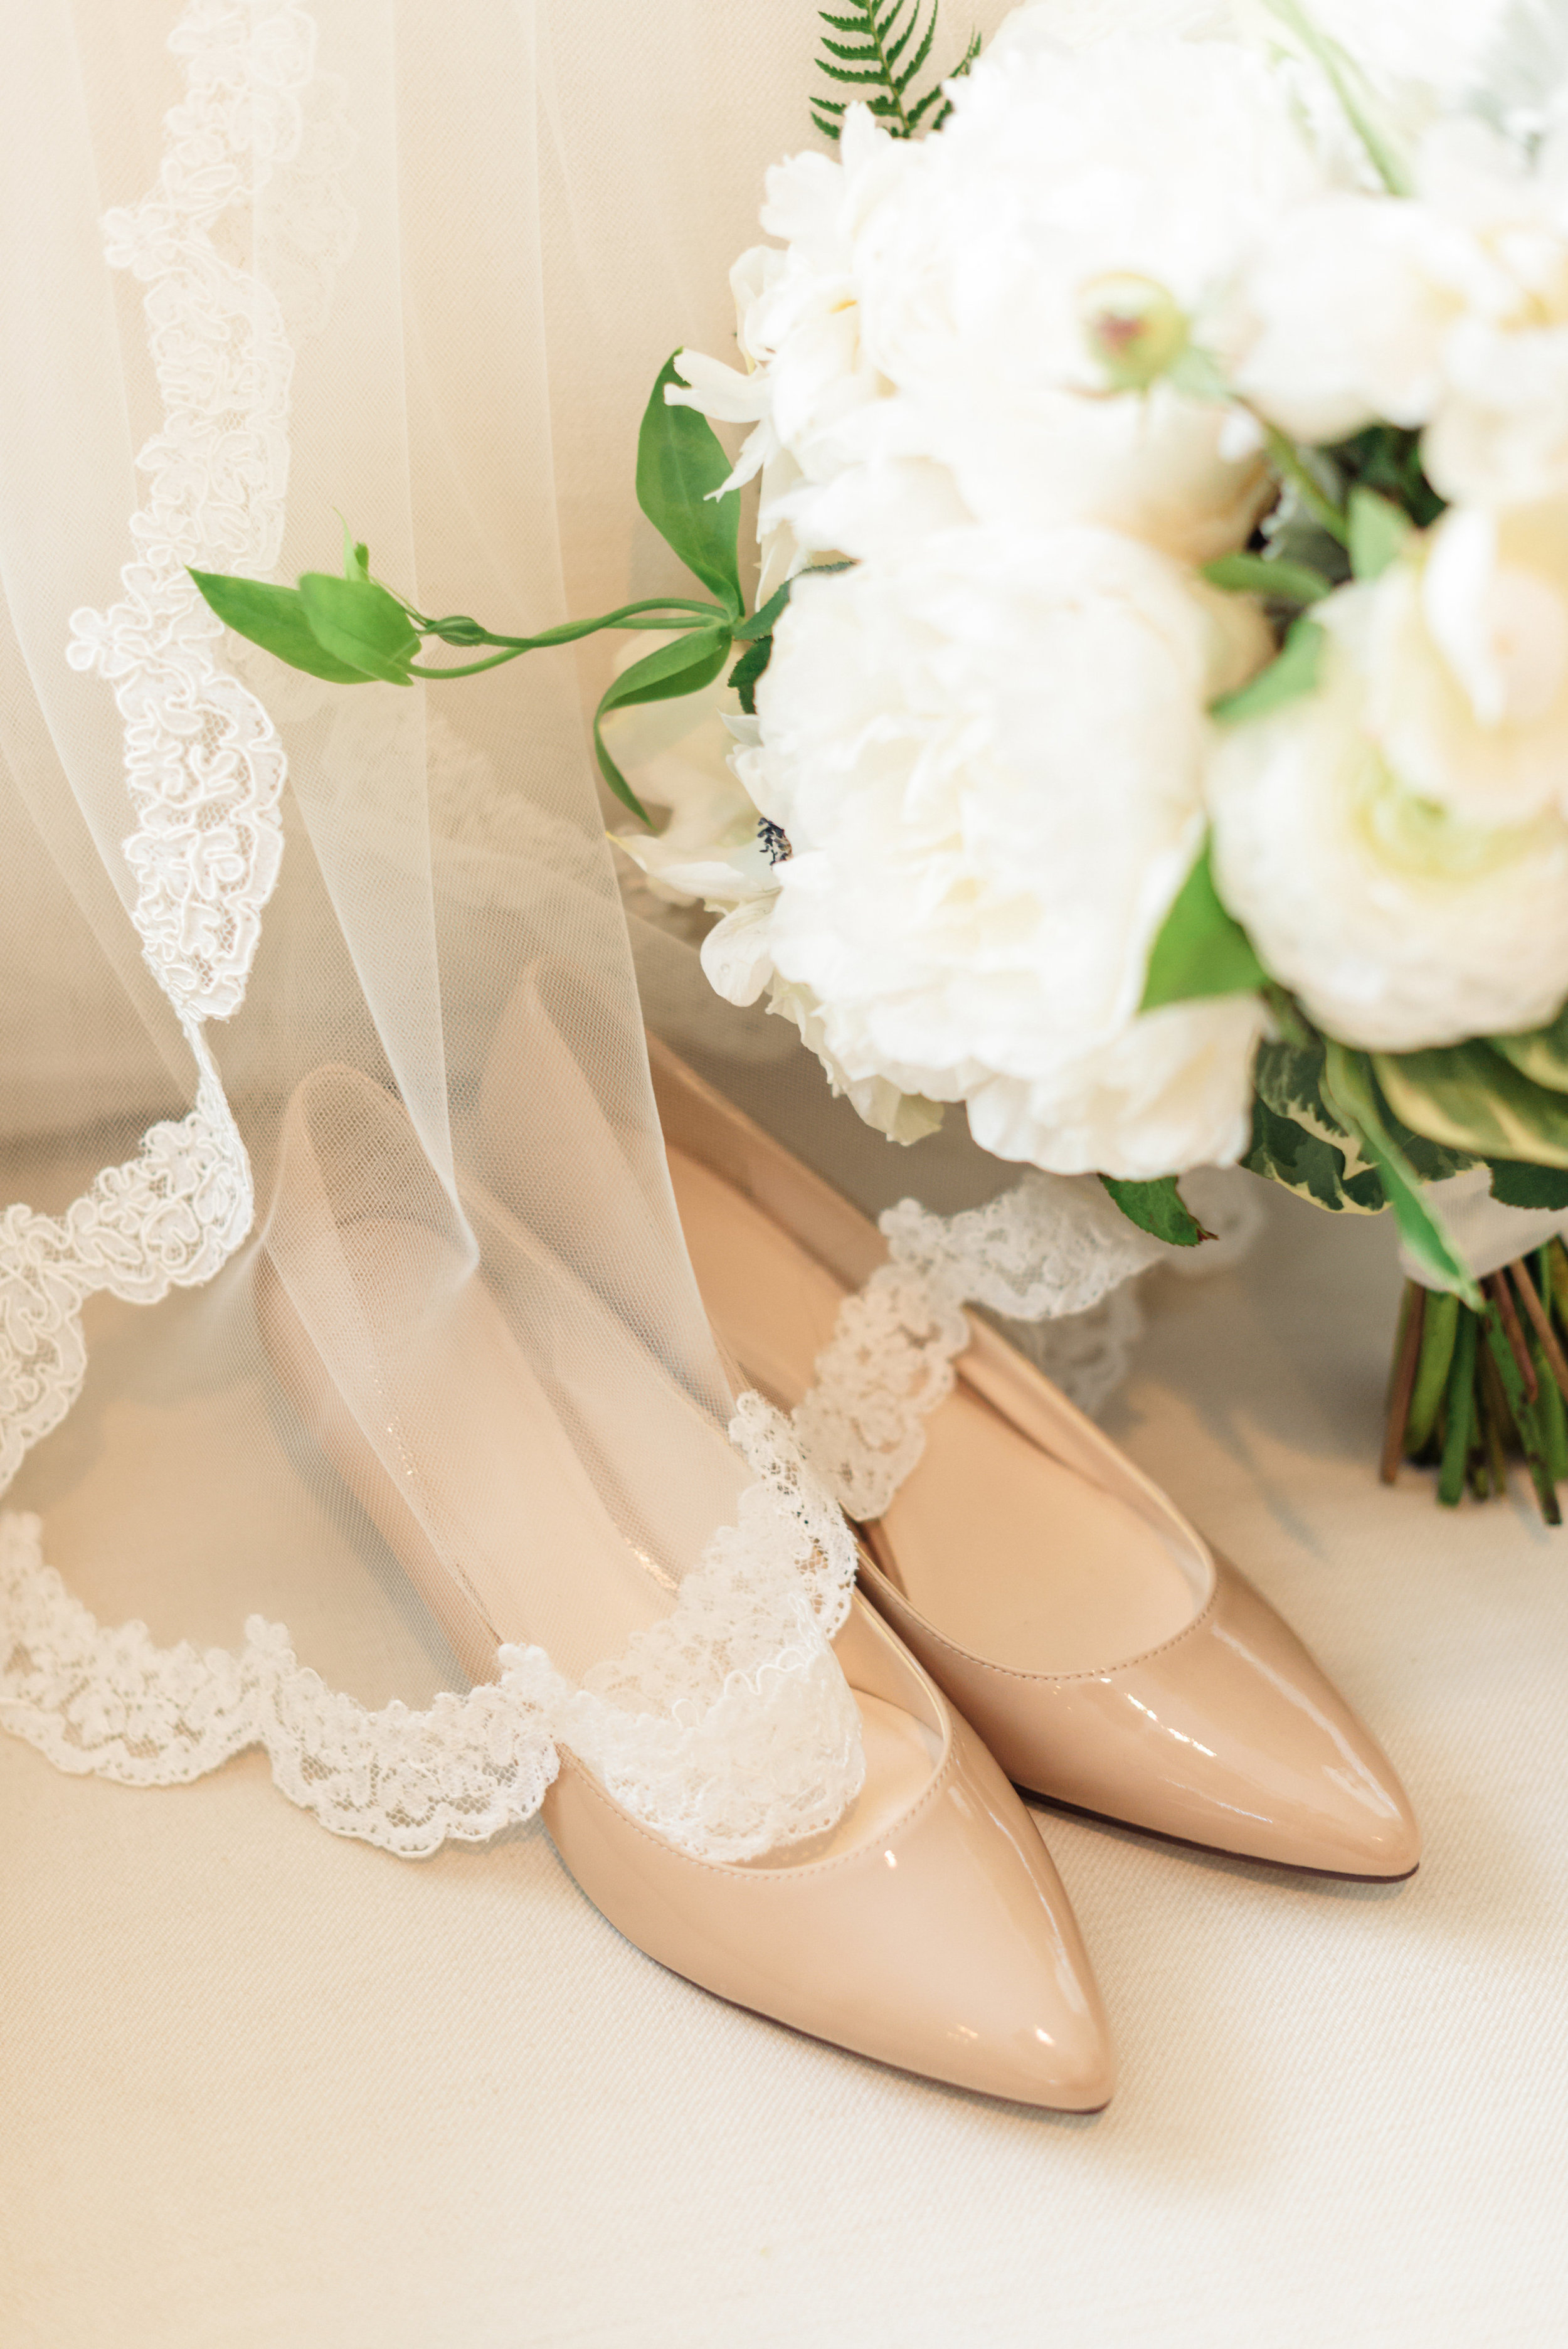 www.santabarbarawedding.com | Sanaz Photography | The Riviera Mansion | Bridal Accessories